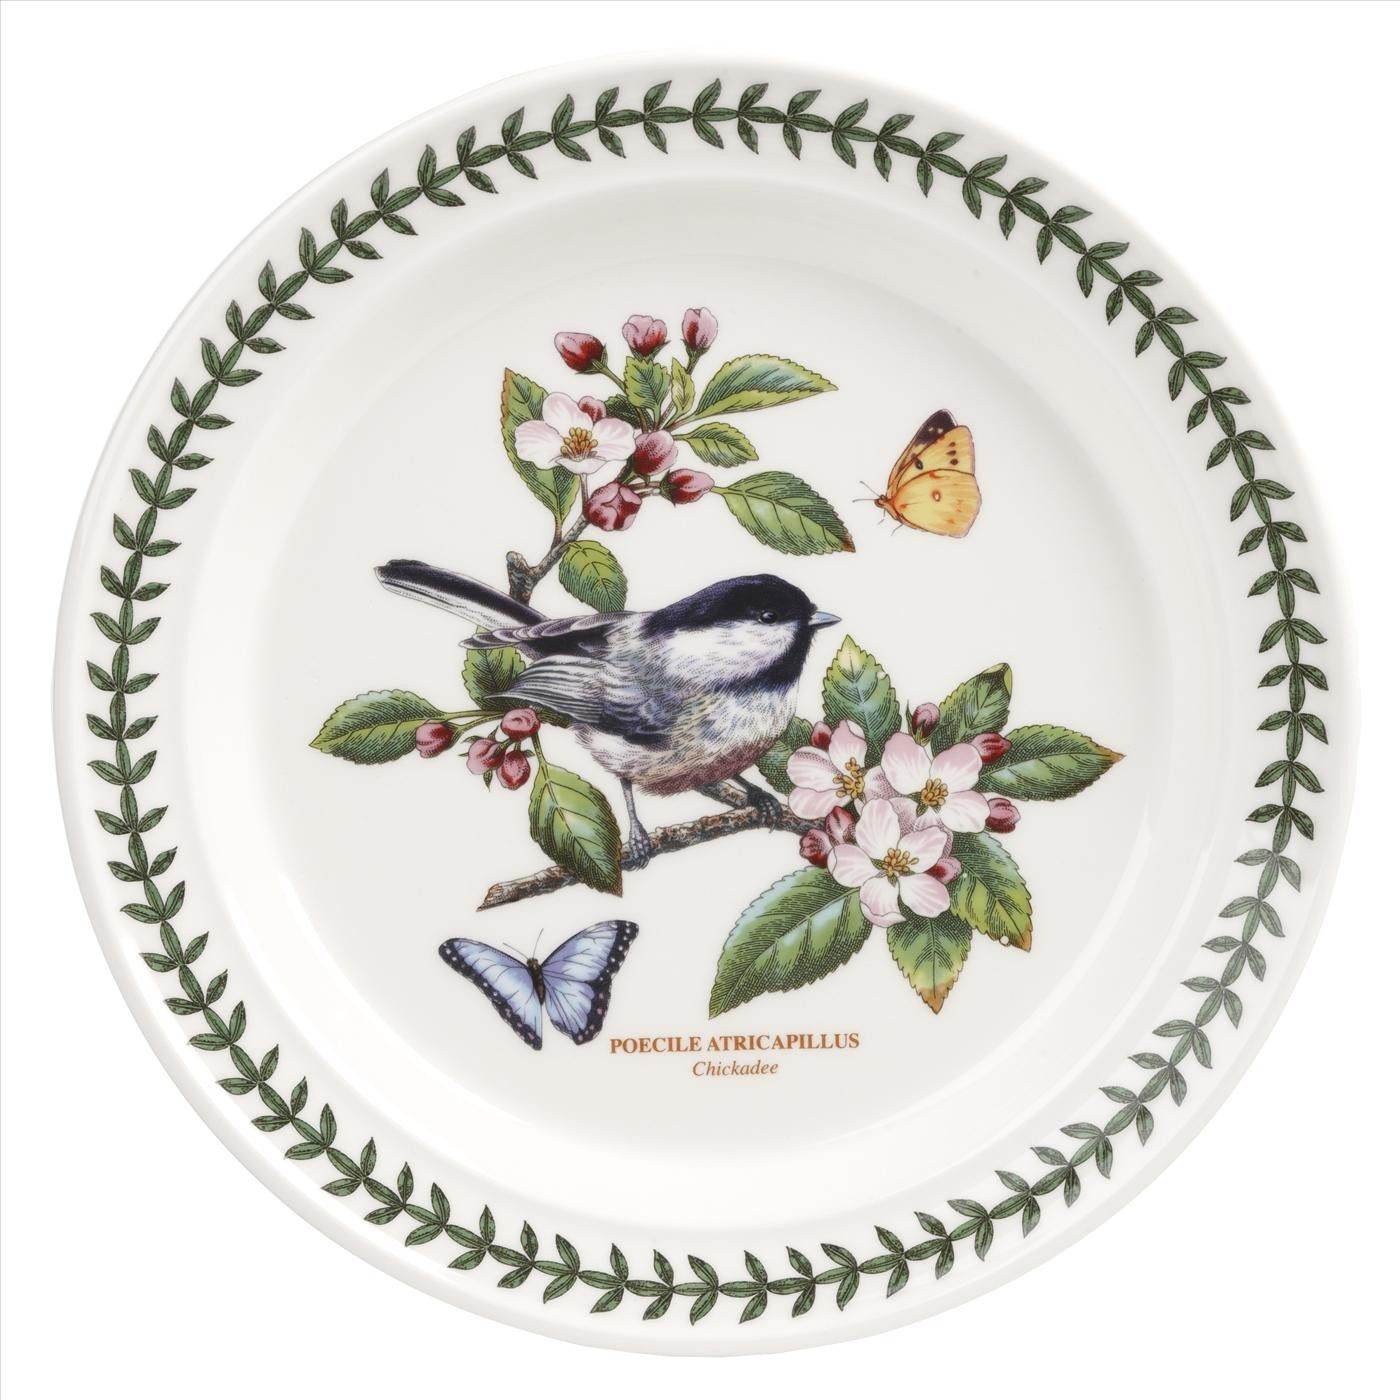 Portmeirion Botanic Garden Designs portmeirion botanic garden chintz placemats 305 x 23cm set of 6 Portmeirion Botanic Garden Birds Set Of 6 Chickadee Dinner Plates